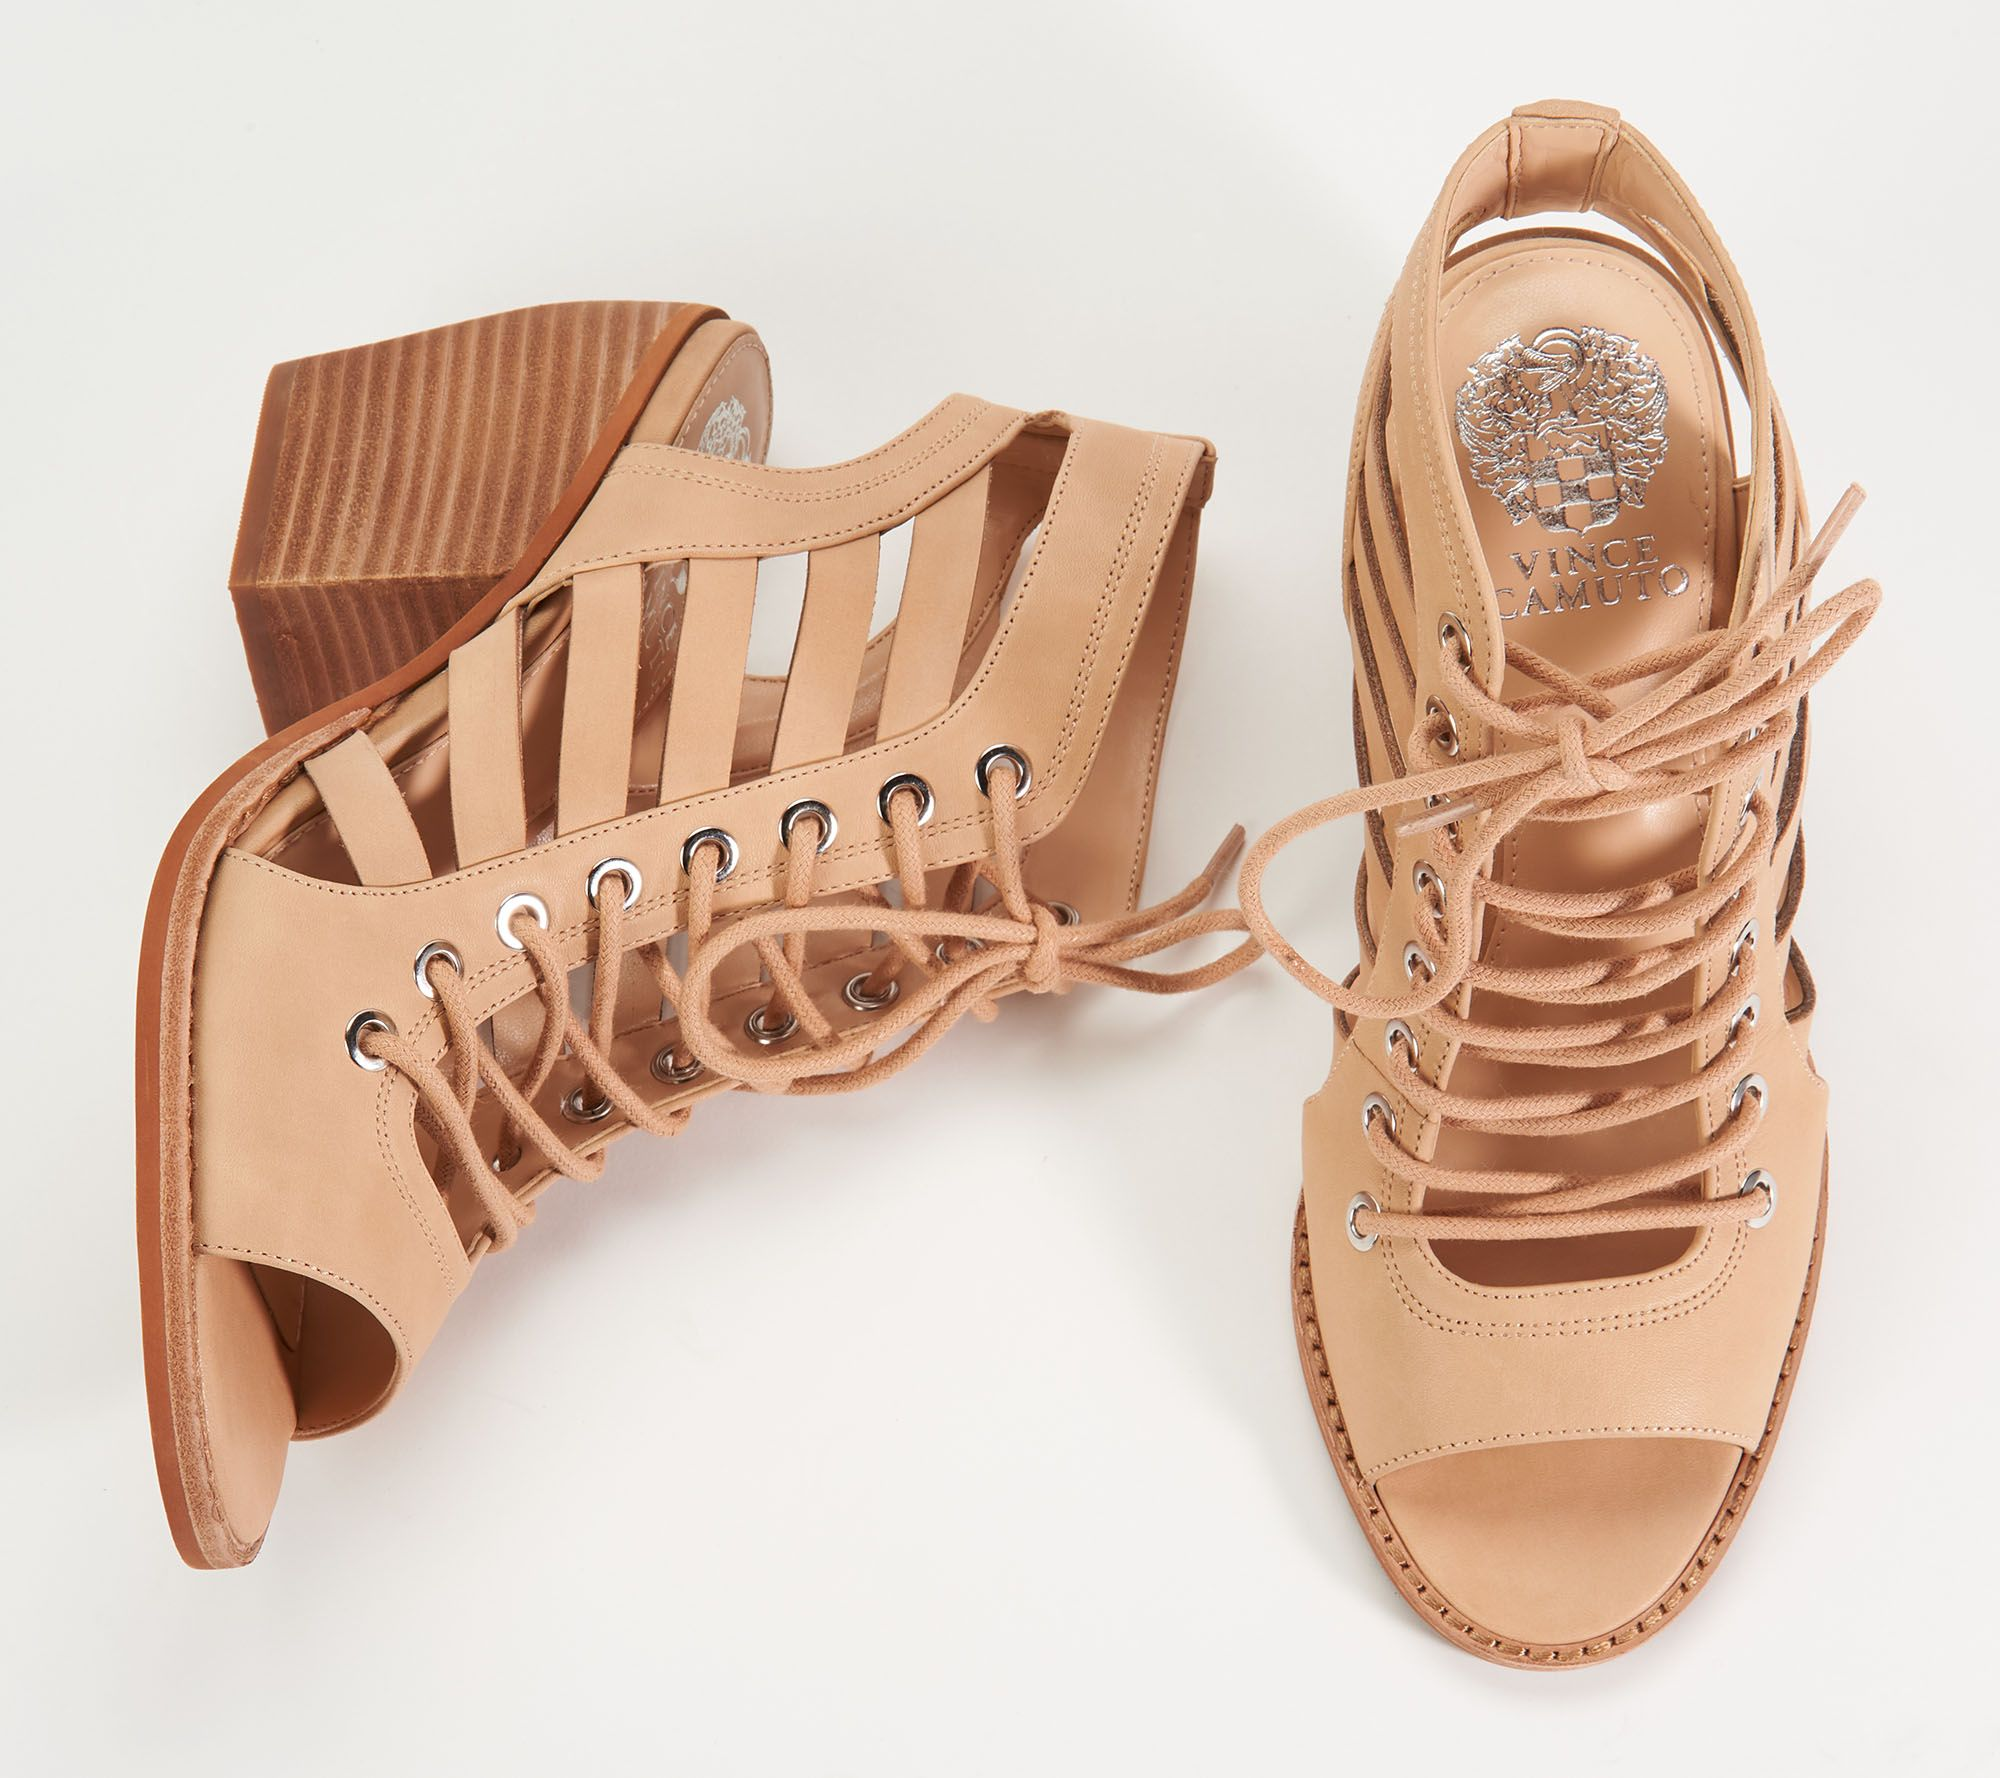 daf1038554d2 Vince Camuto Nubuck Lace-Up Heeled Sandals- Chesten - Page 1 — QVC.com